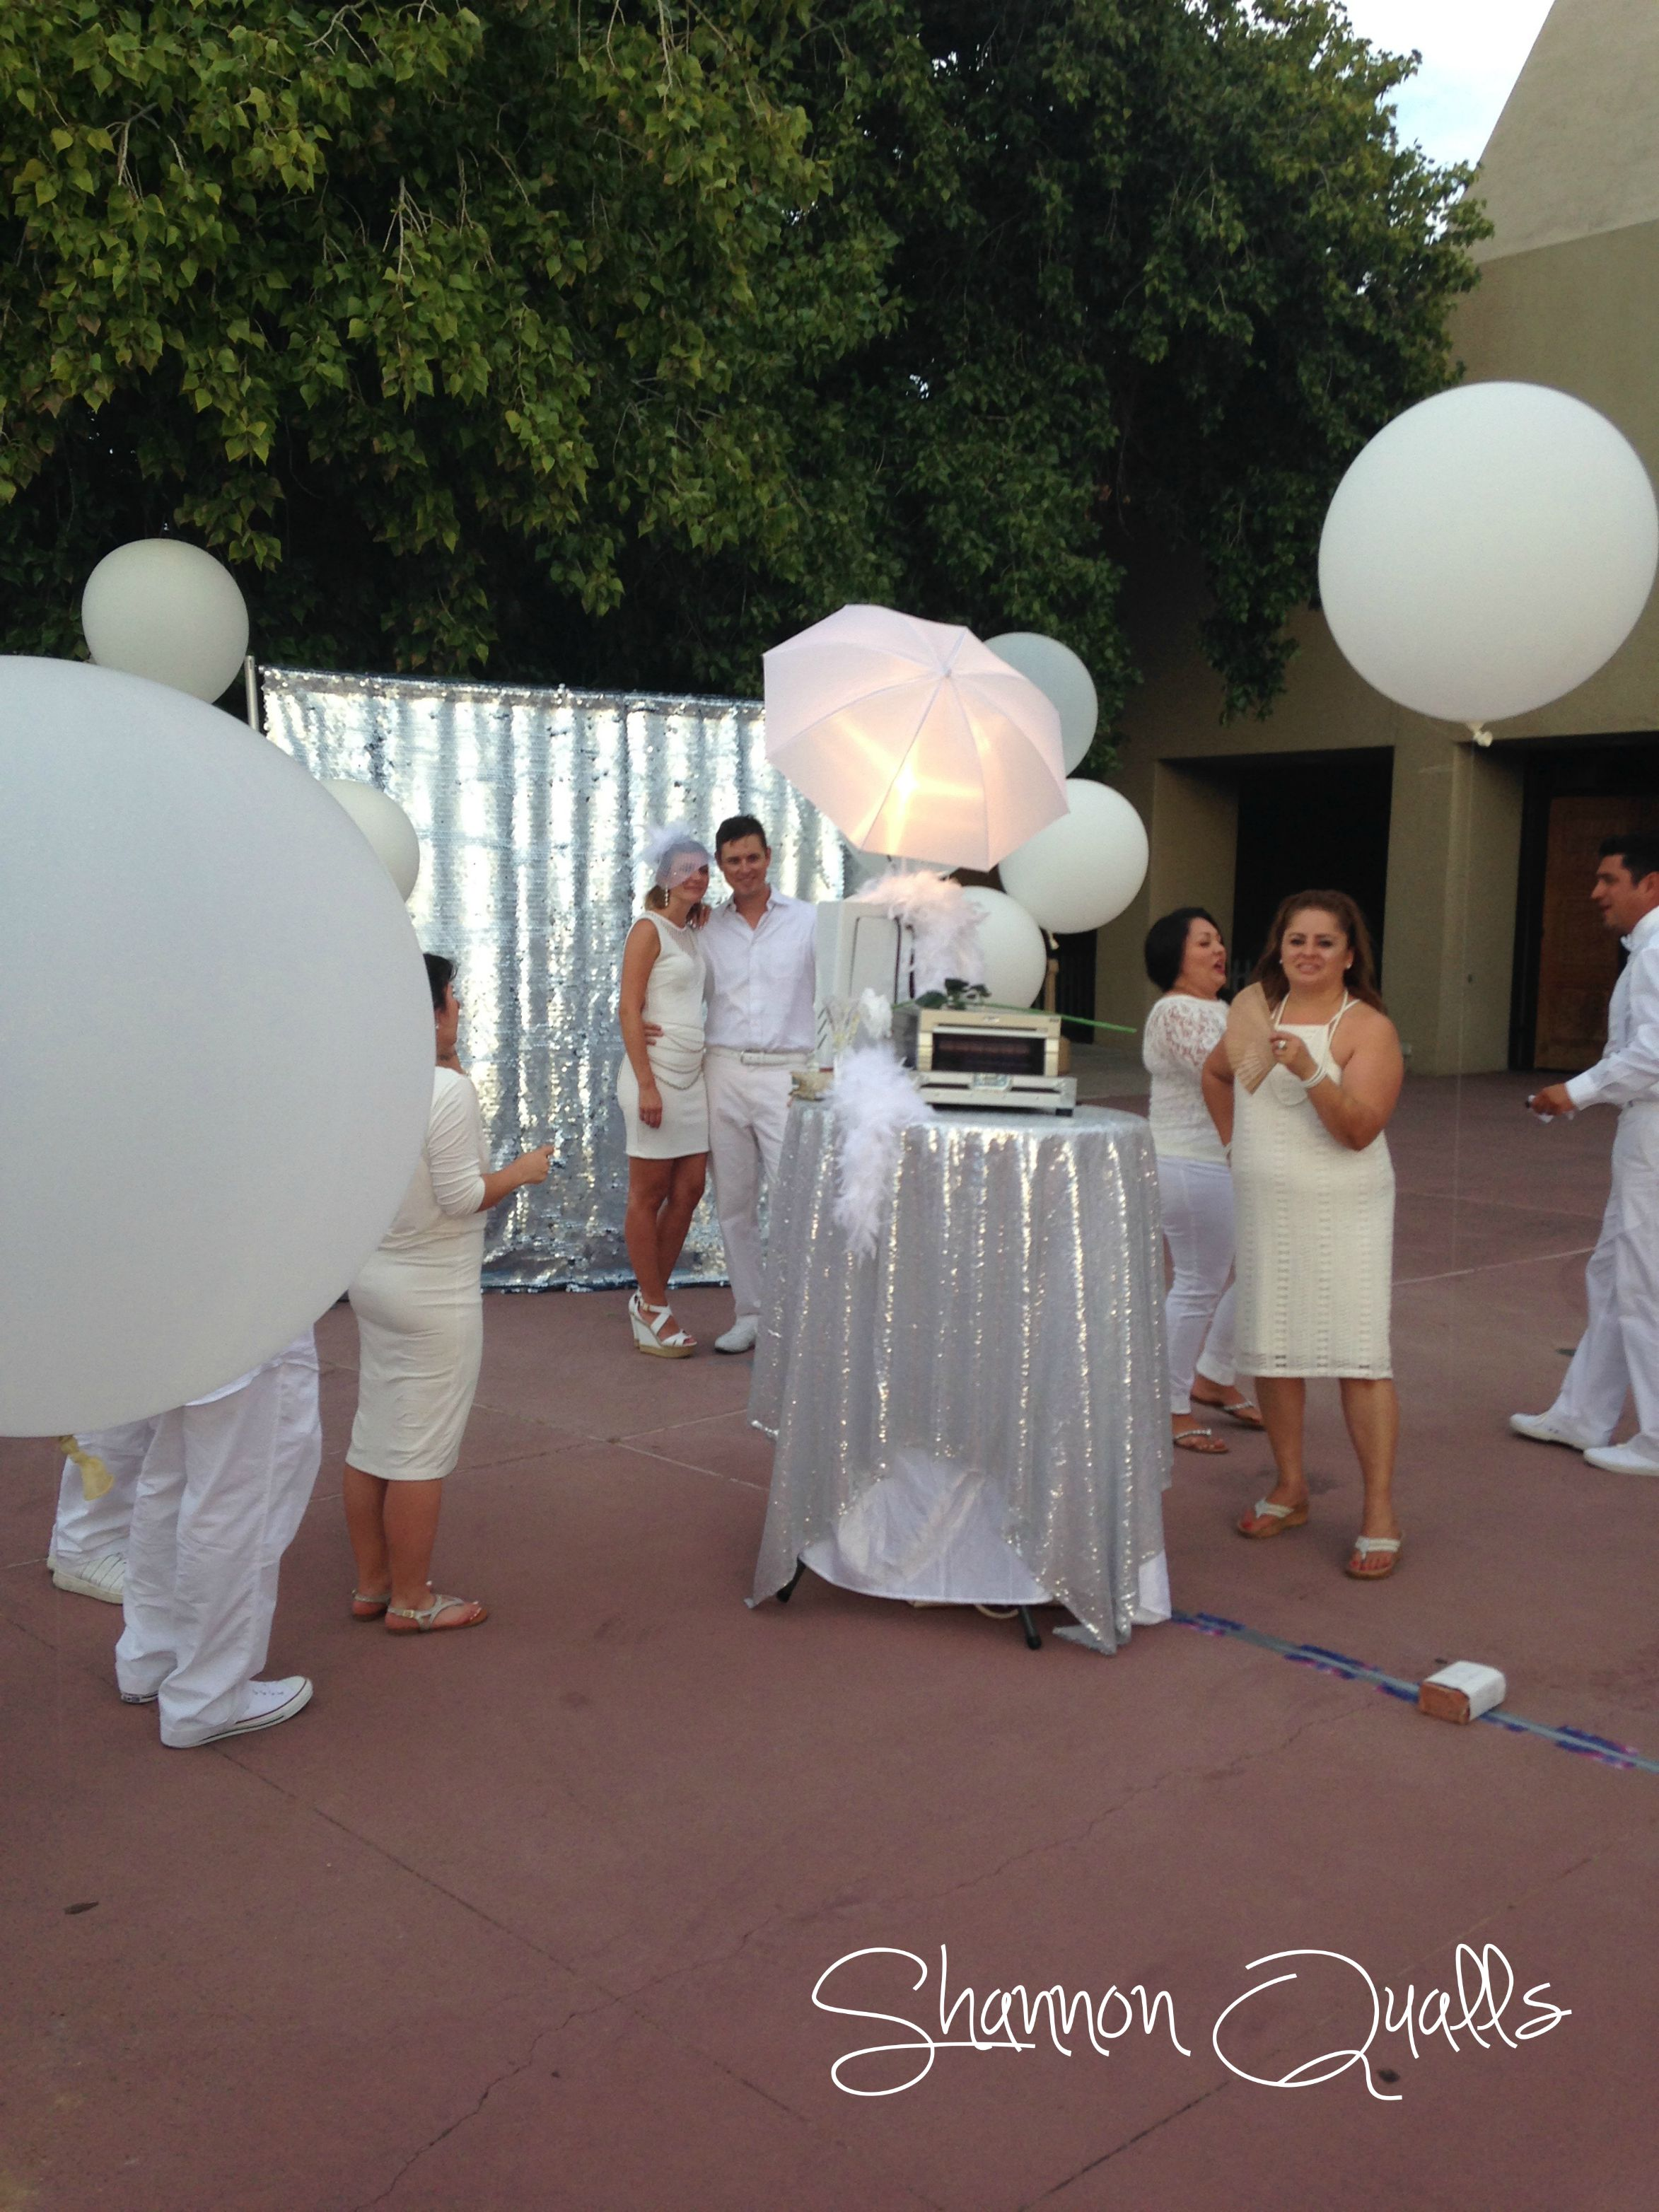 Diner en Blanc Balloon Forest from shannonqualls.com